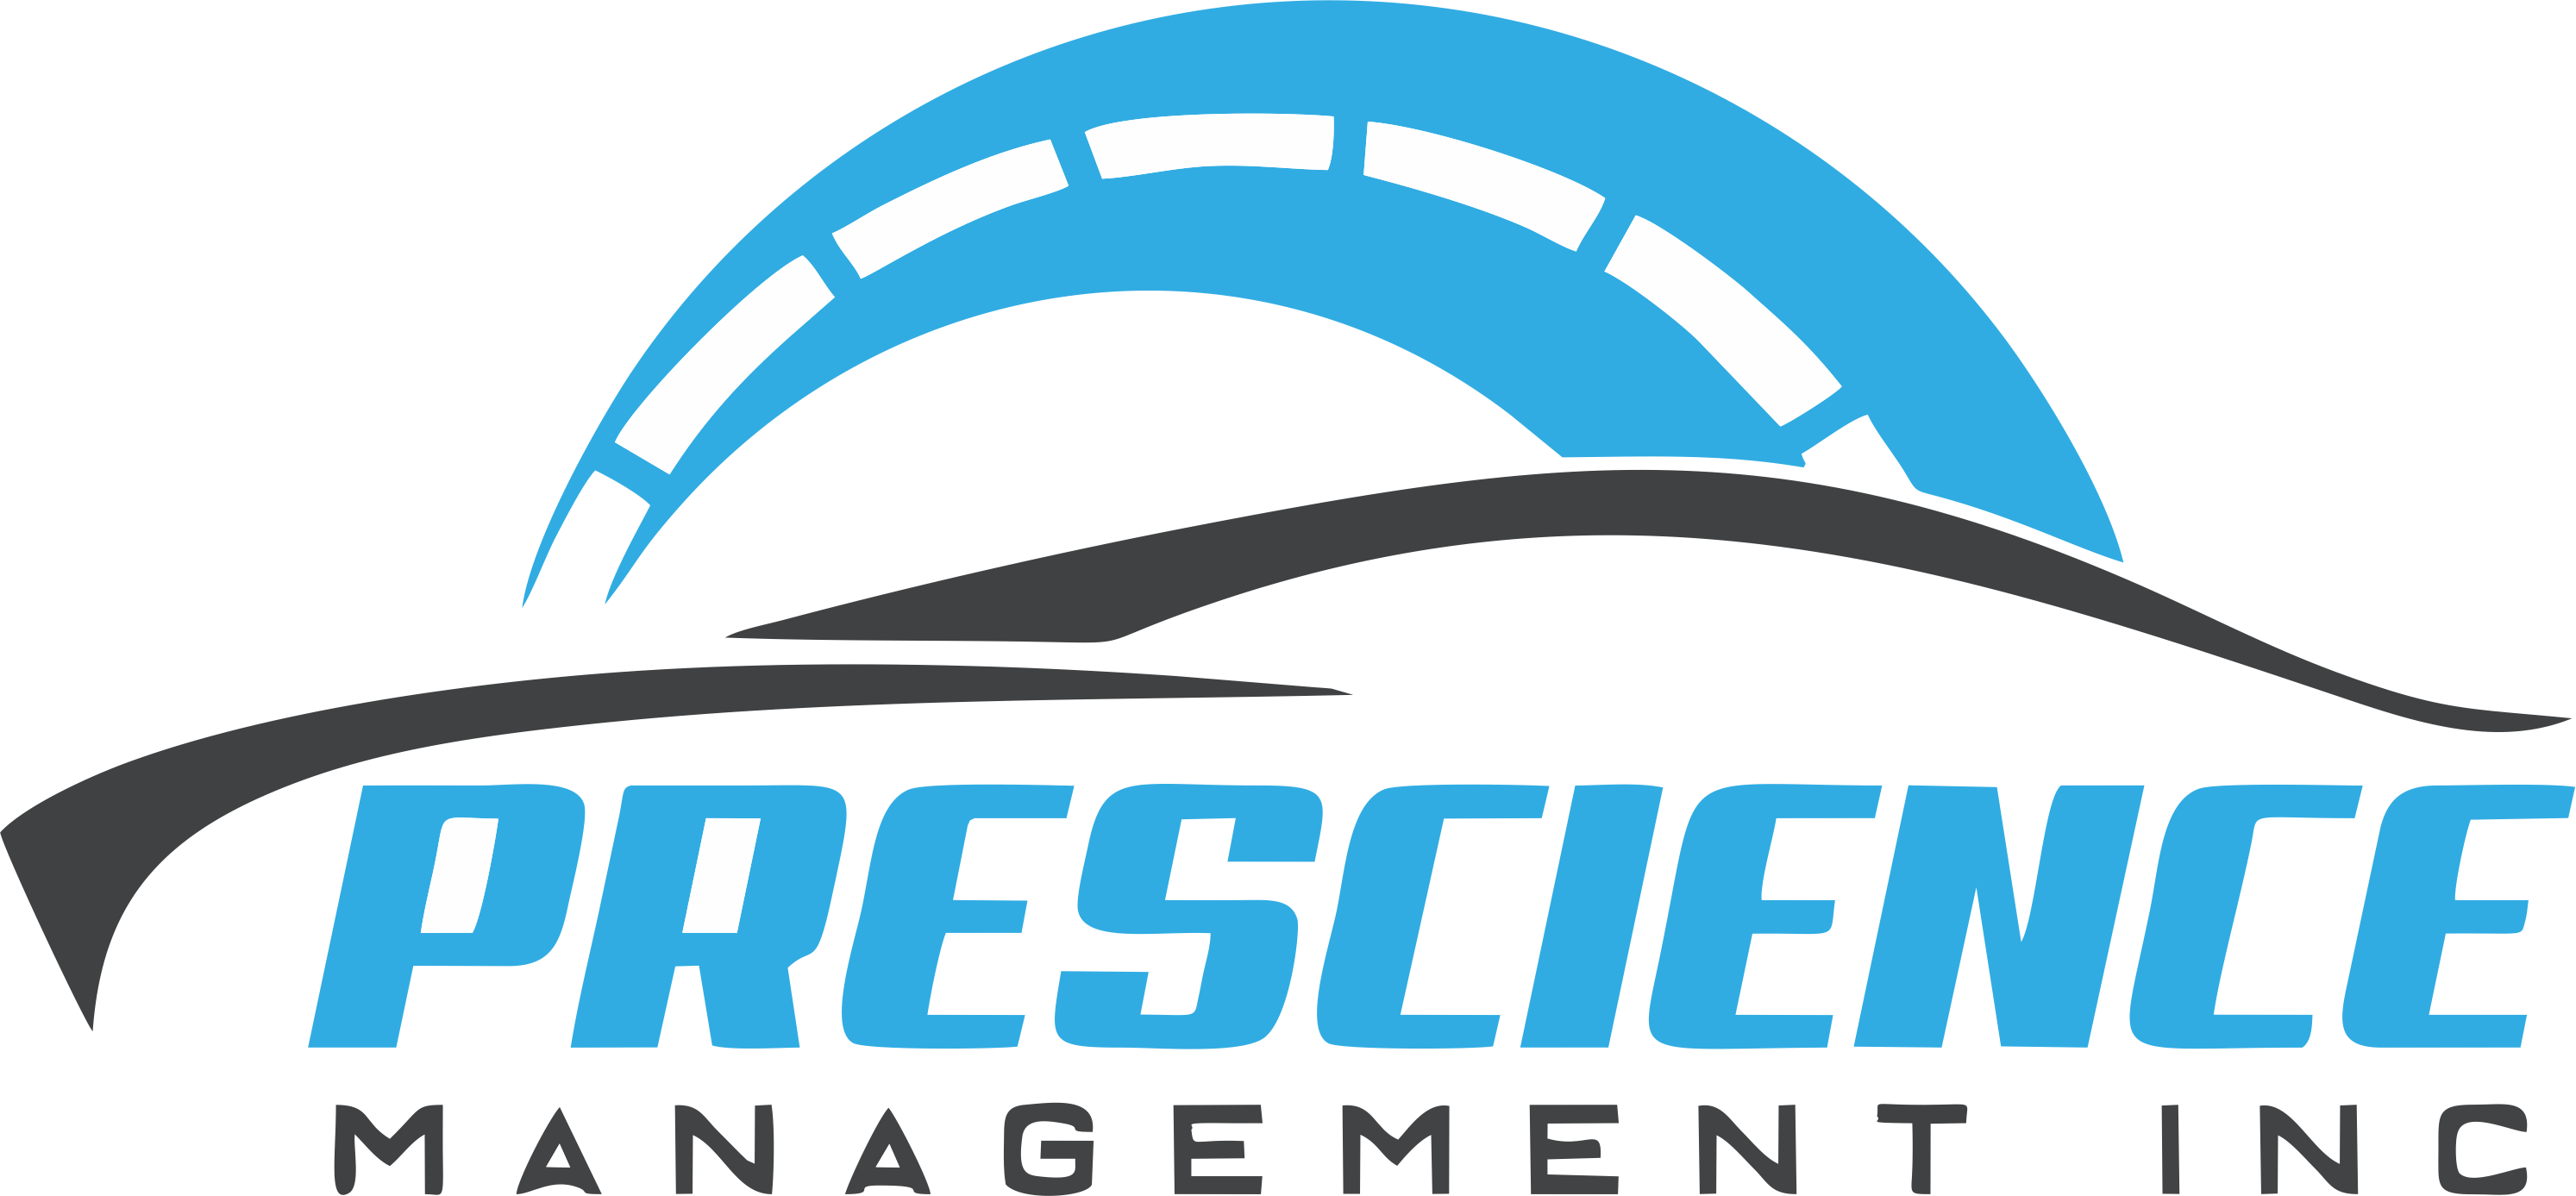 Prescience Management Logo